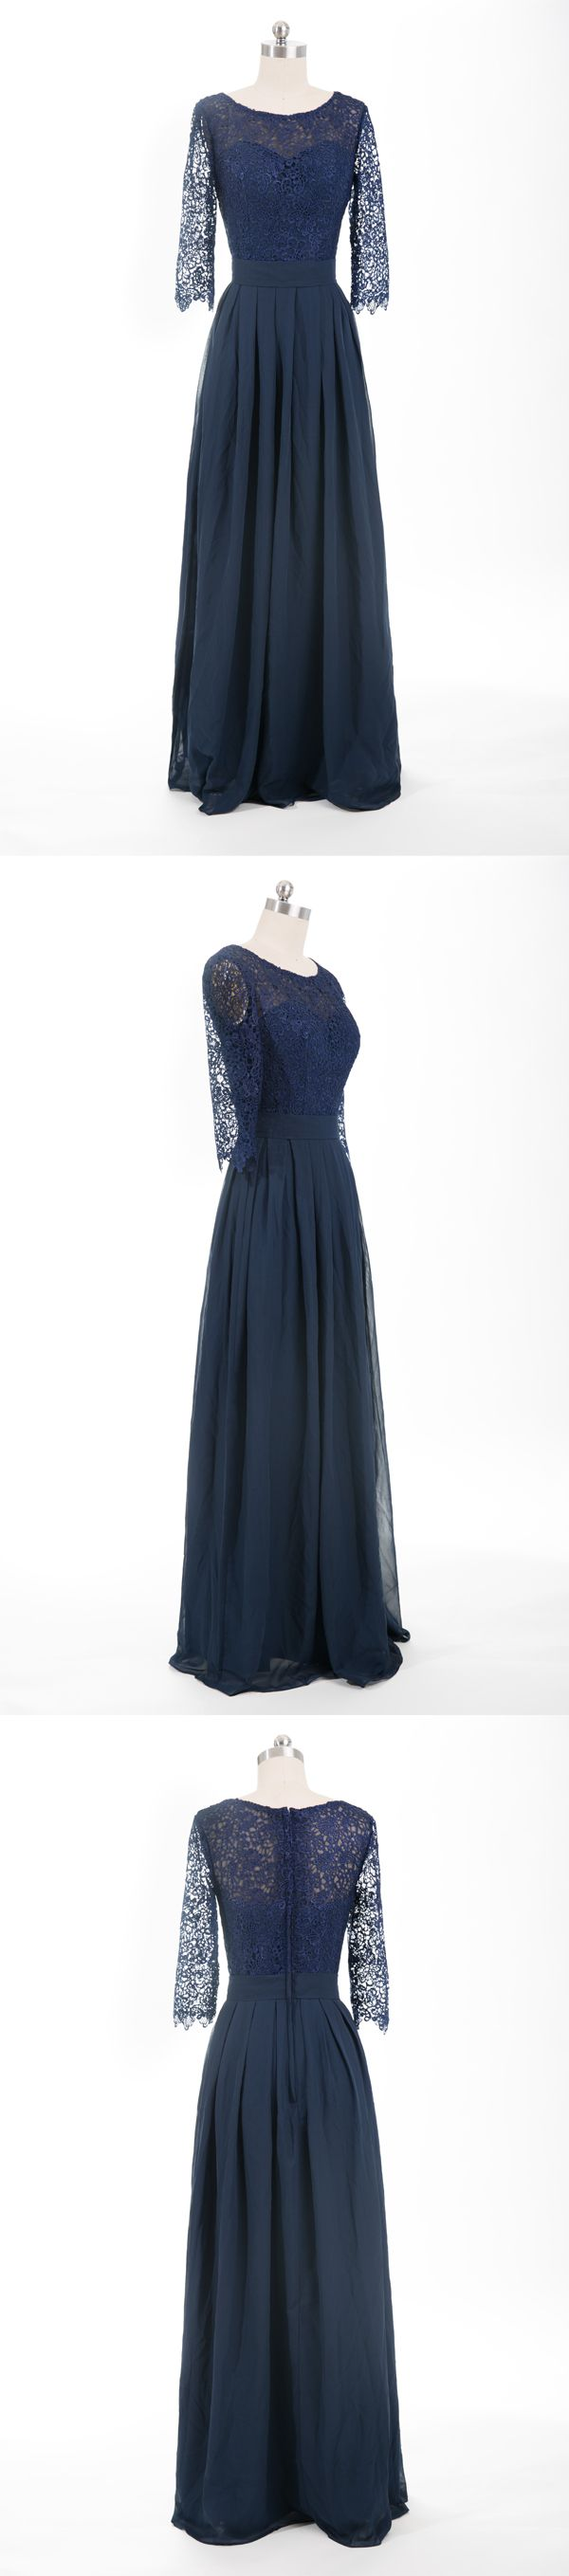 dark navy long lace and chiffon bridesmaid dresses